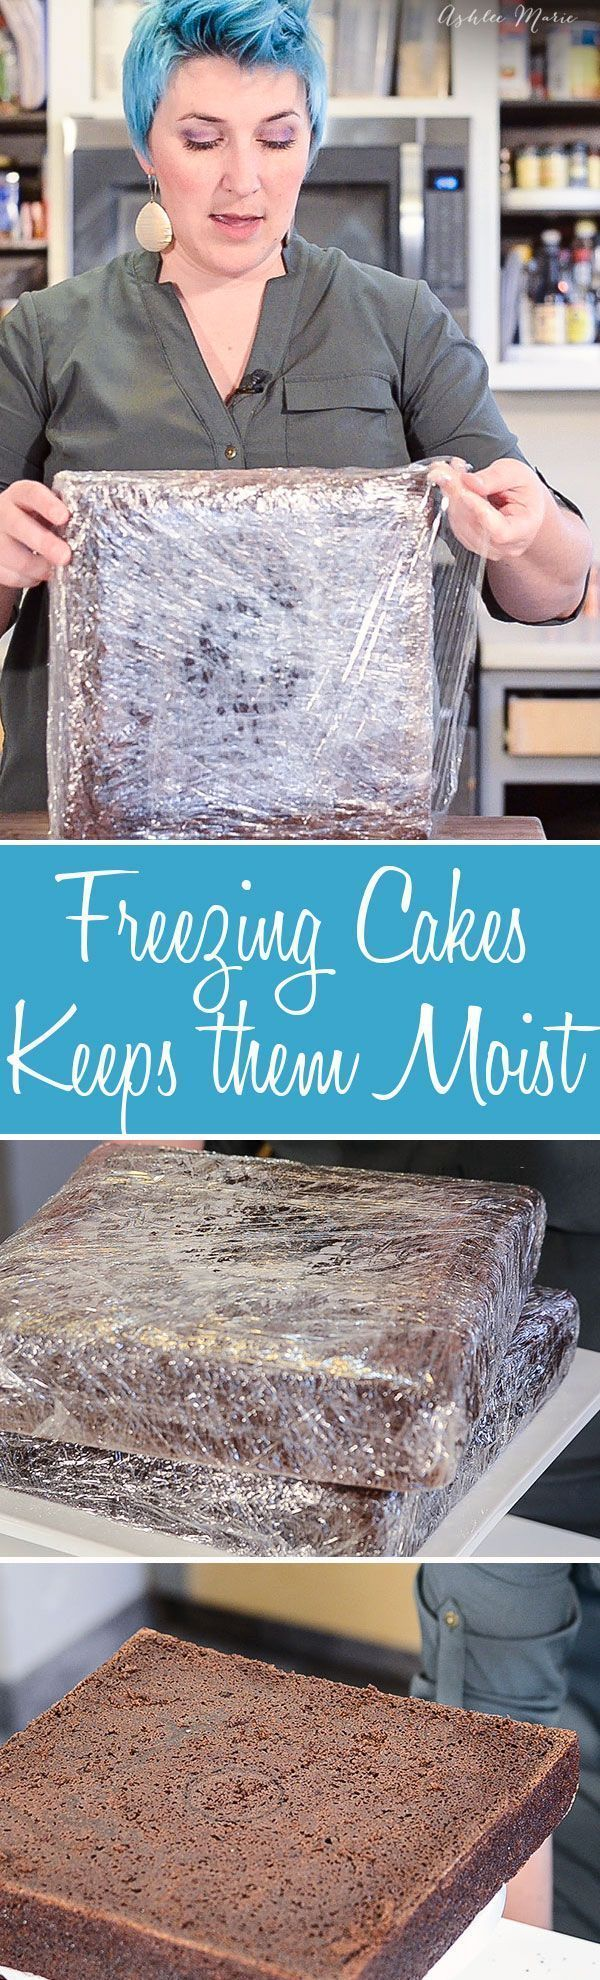 why freezing cakes keeps them moist and easier to work with.  Perfect when making a wedding cake!